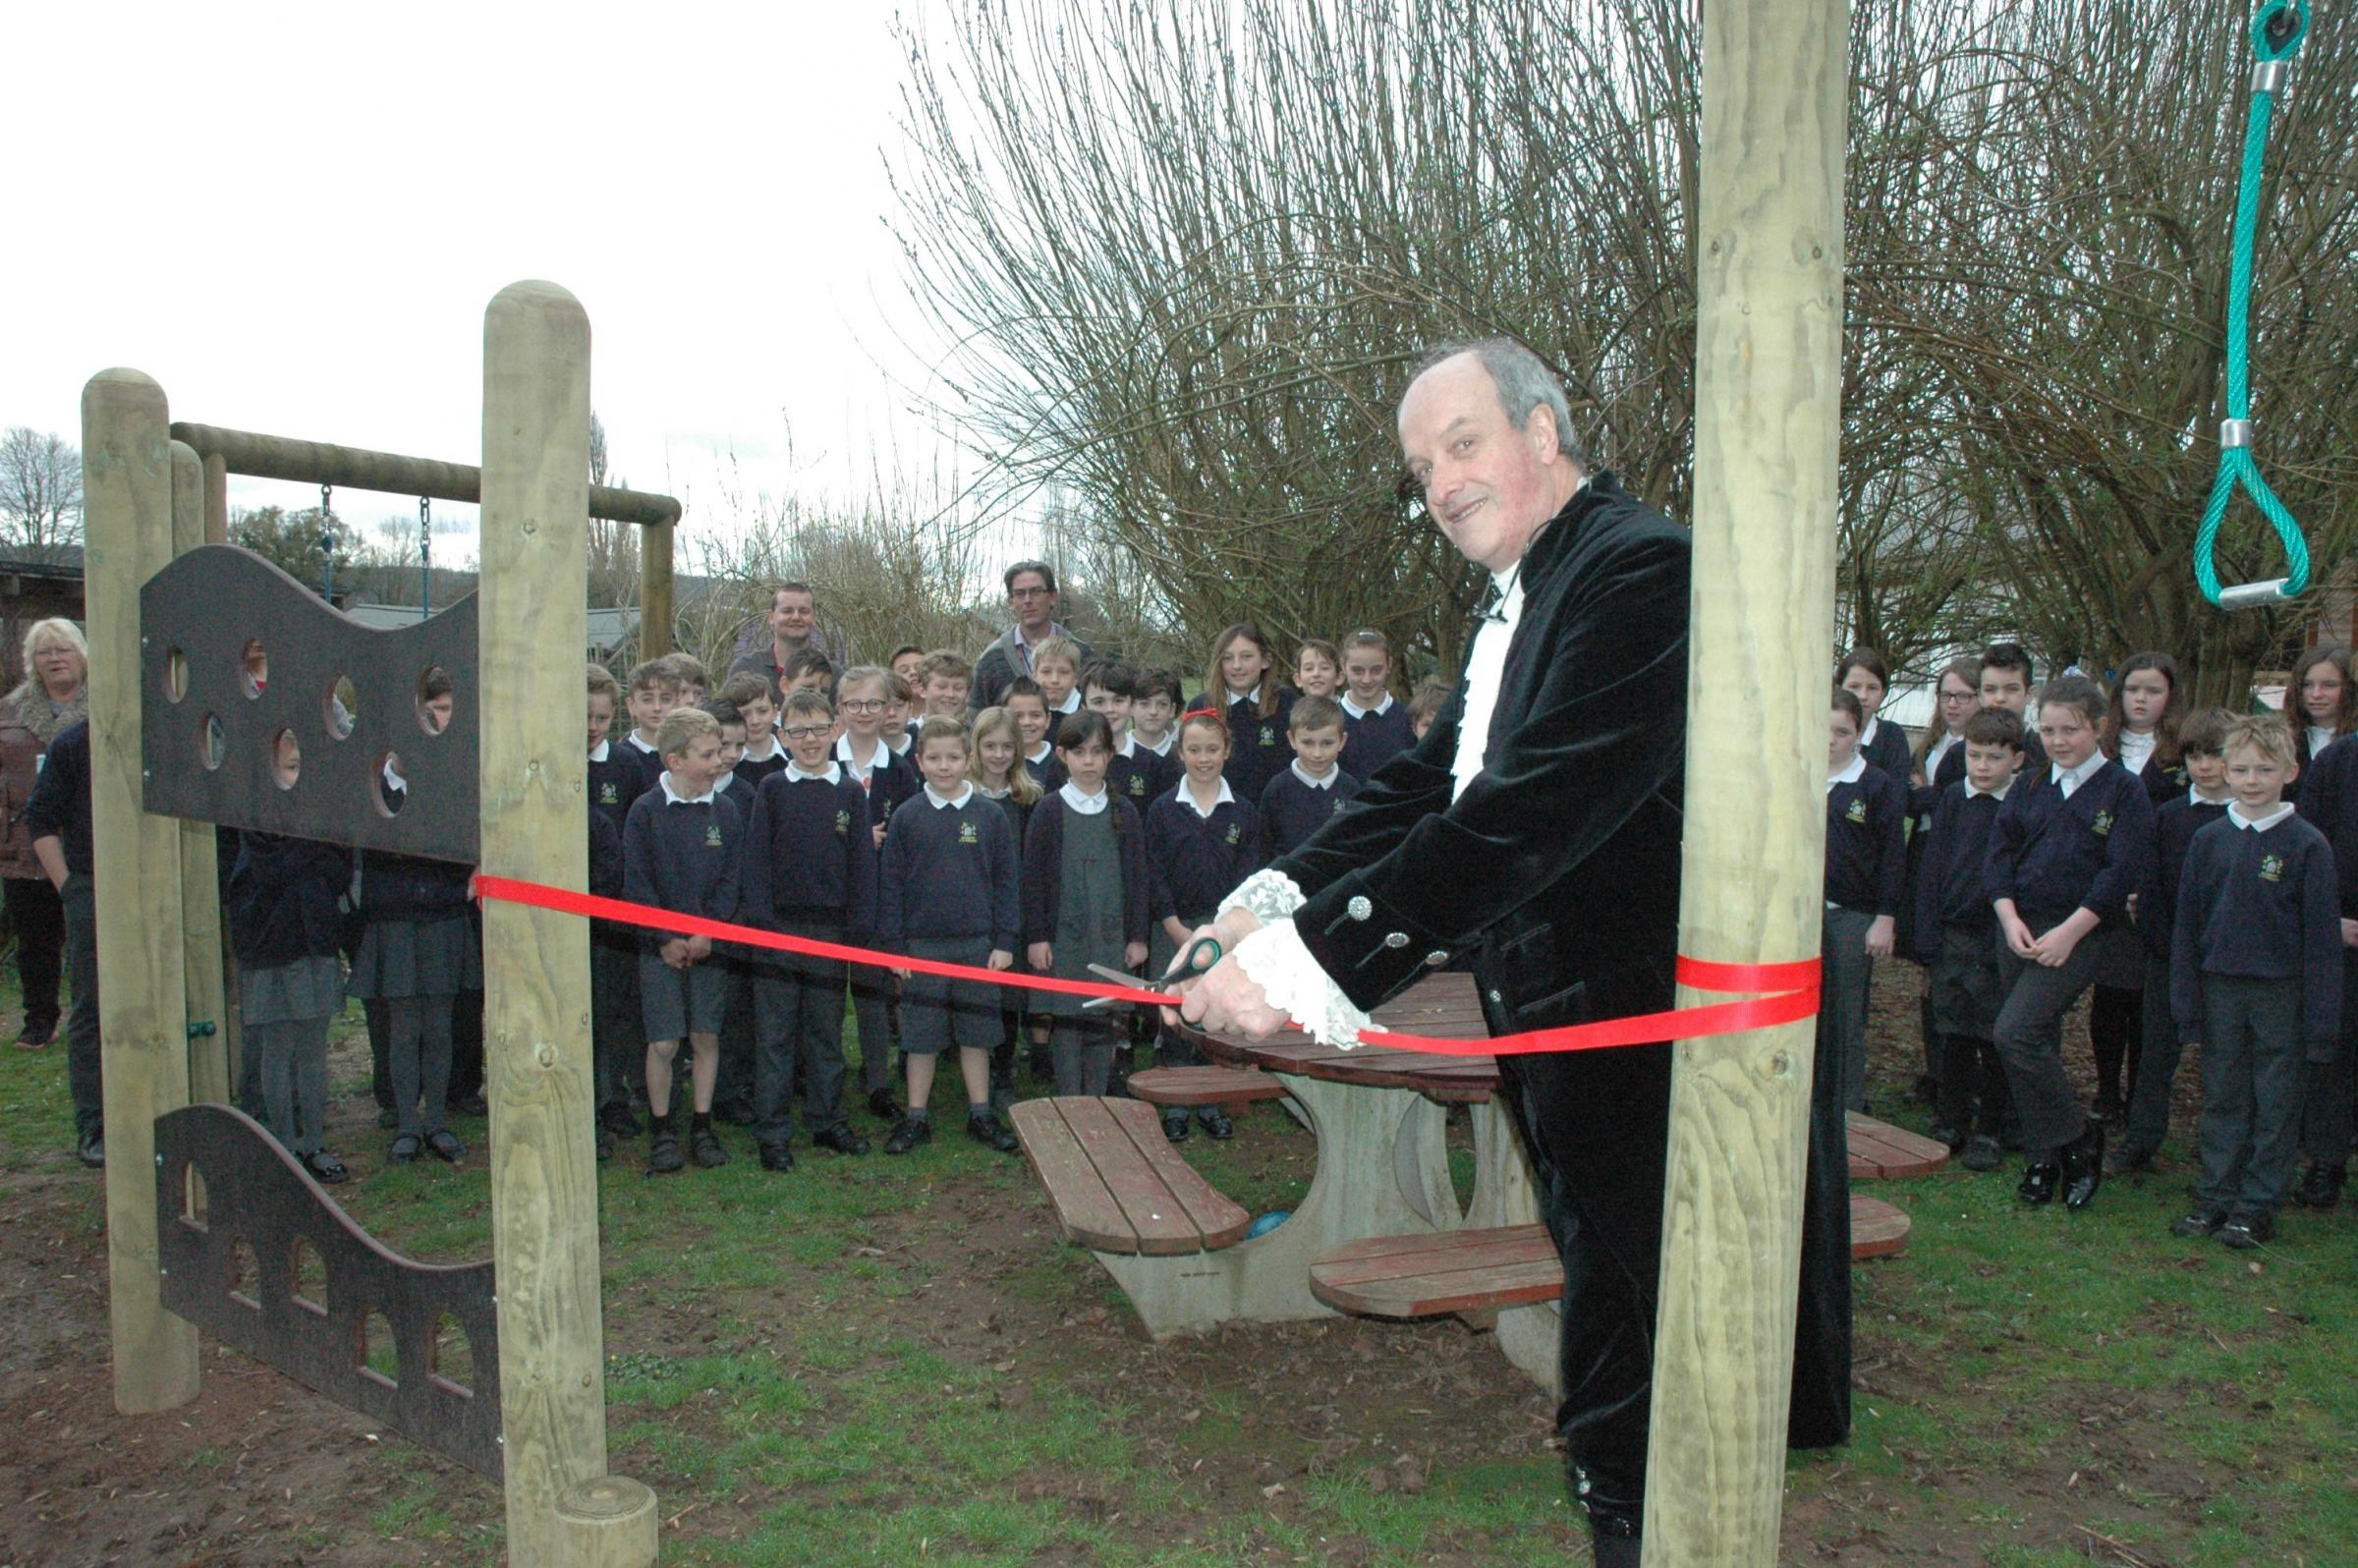 DELIGHTED: High Sheriff Nat Hone declares the play equipment open at Bosbury Primary